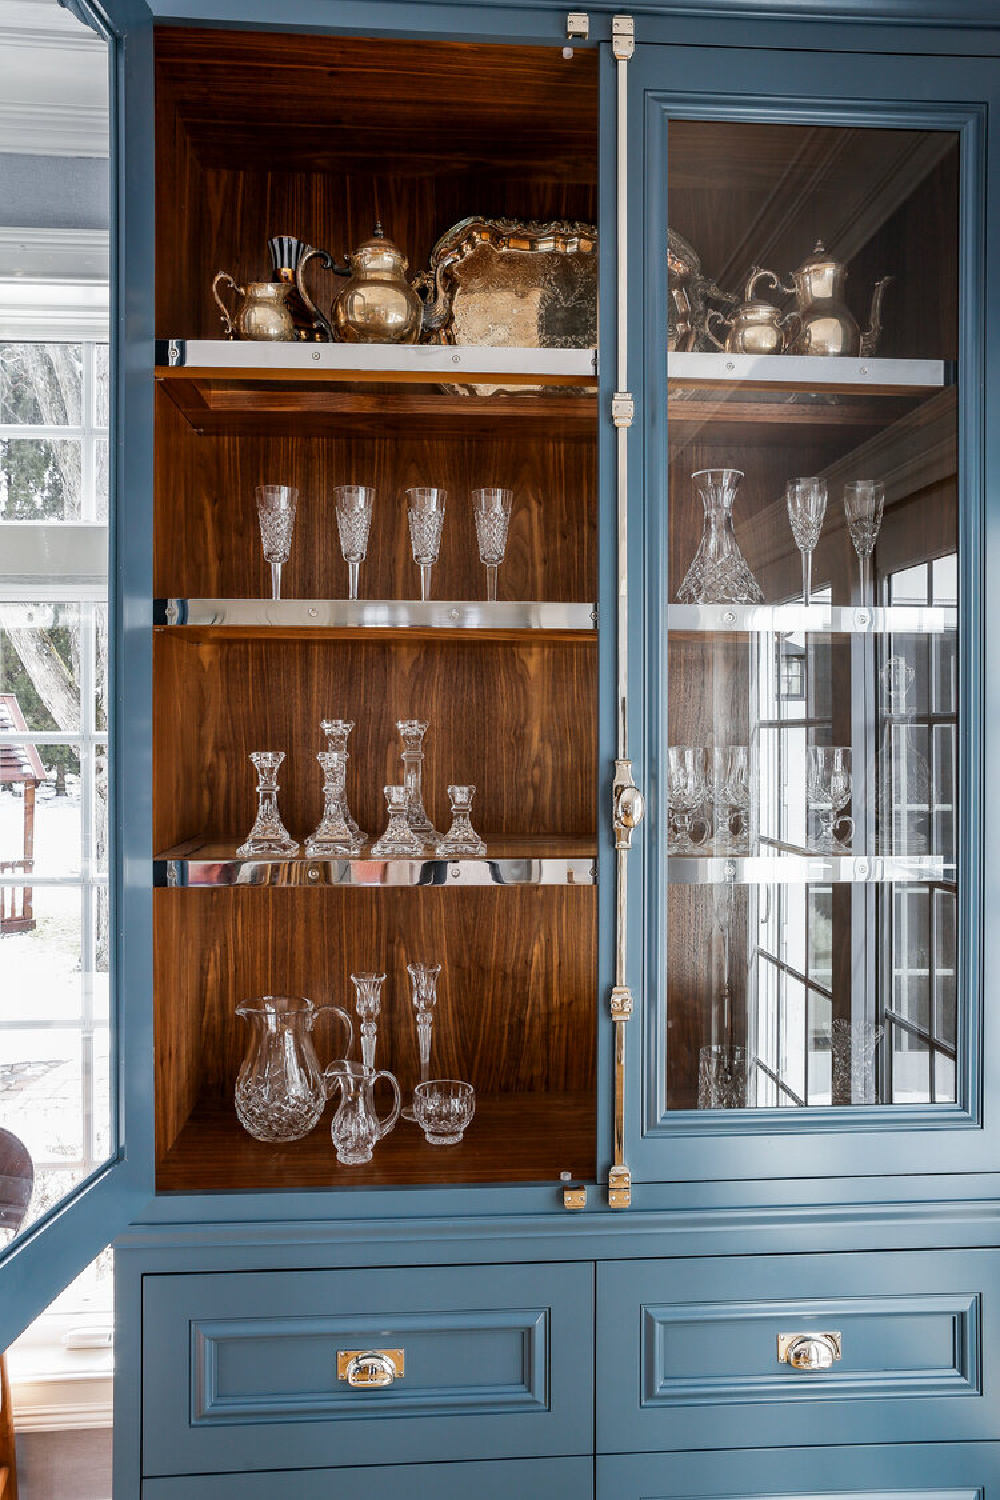 Beautiful blue kitchen ideas - this hutch with glass doors in a classic kitchen has an unfitted look by Edward Deegan Architects. #bluekitchen #customkitchen